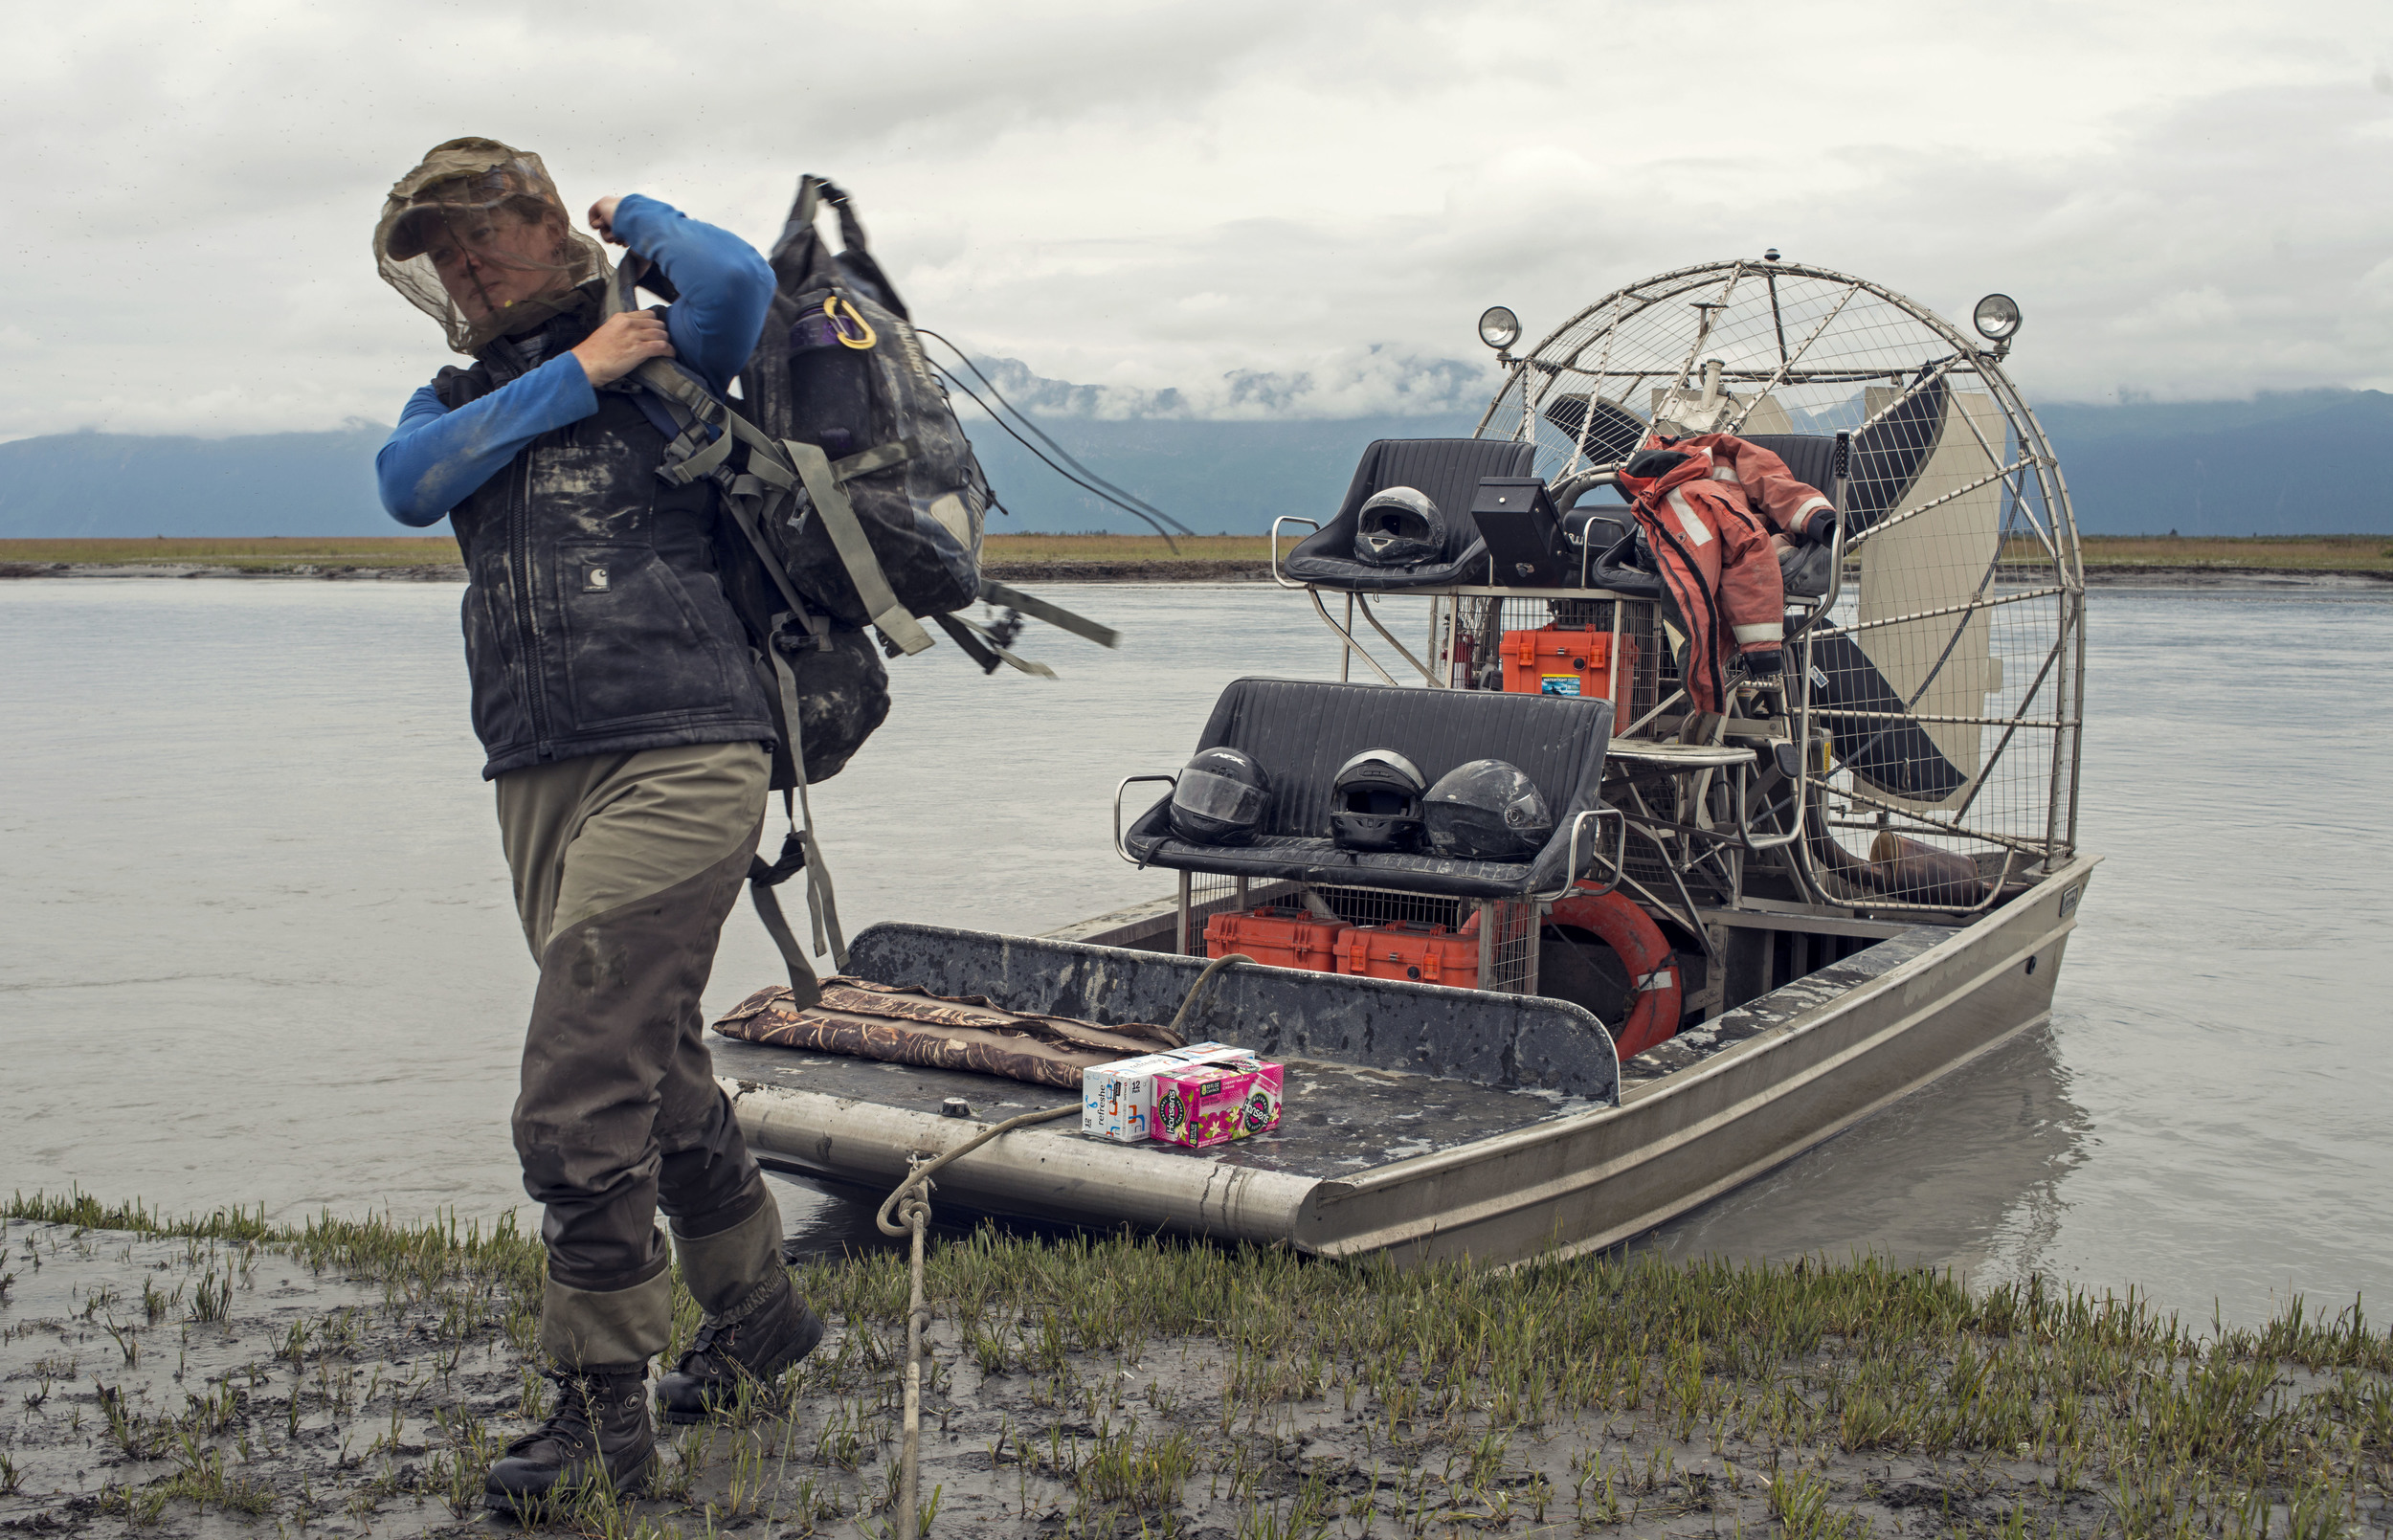 Melissa Gabrielson parks the airboat and carries her gear towards the banding area, where she will work with a group of volunteers for approximately eight hours banding dusky Canada geese.